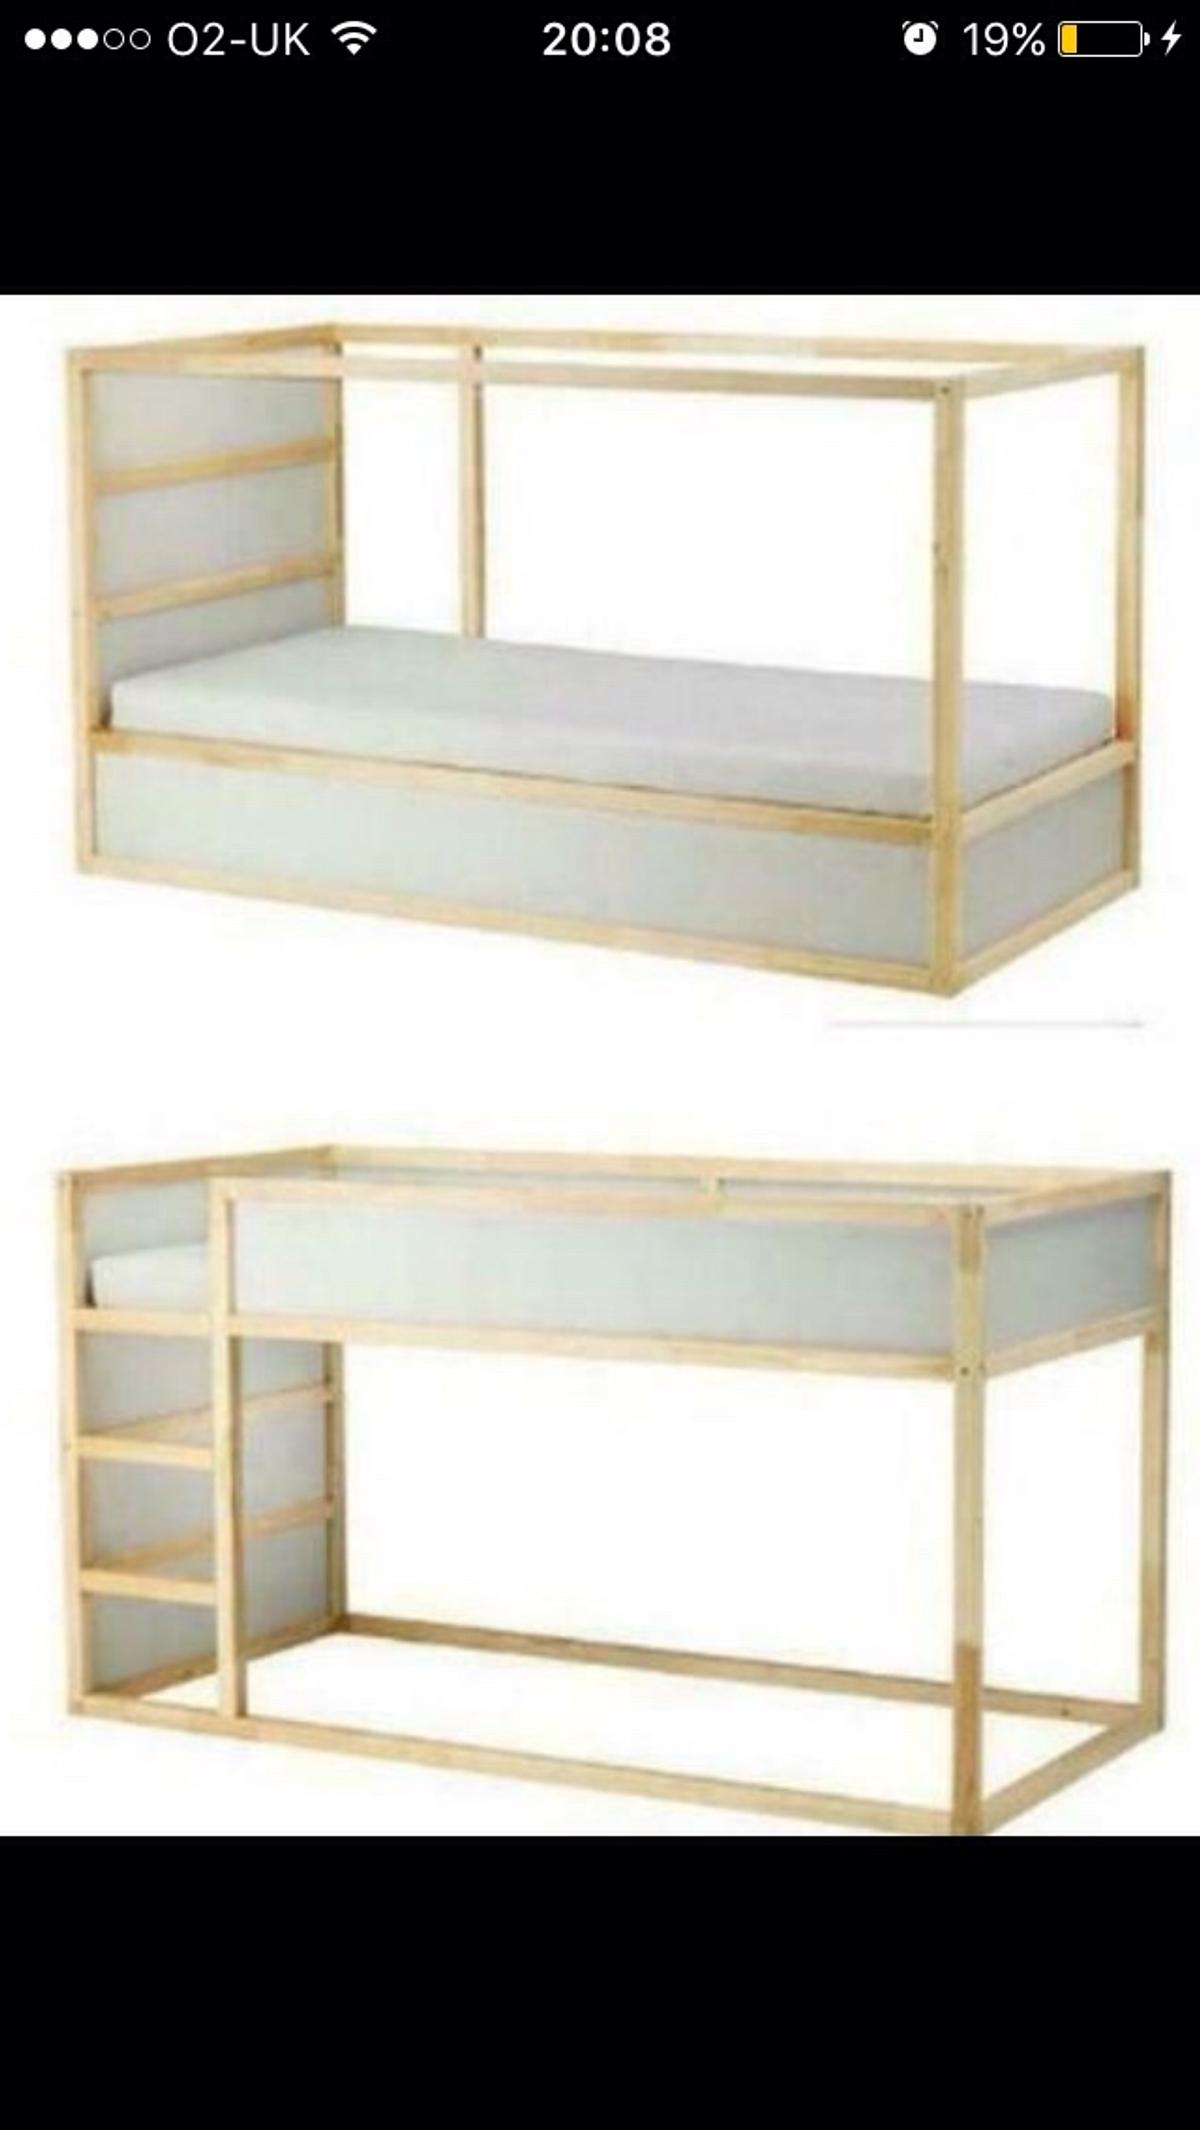 Picture of: Ikea Kura Bunk Bed Single Size Reversible In M14 Manchester For 70 00 For Sale Shpock